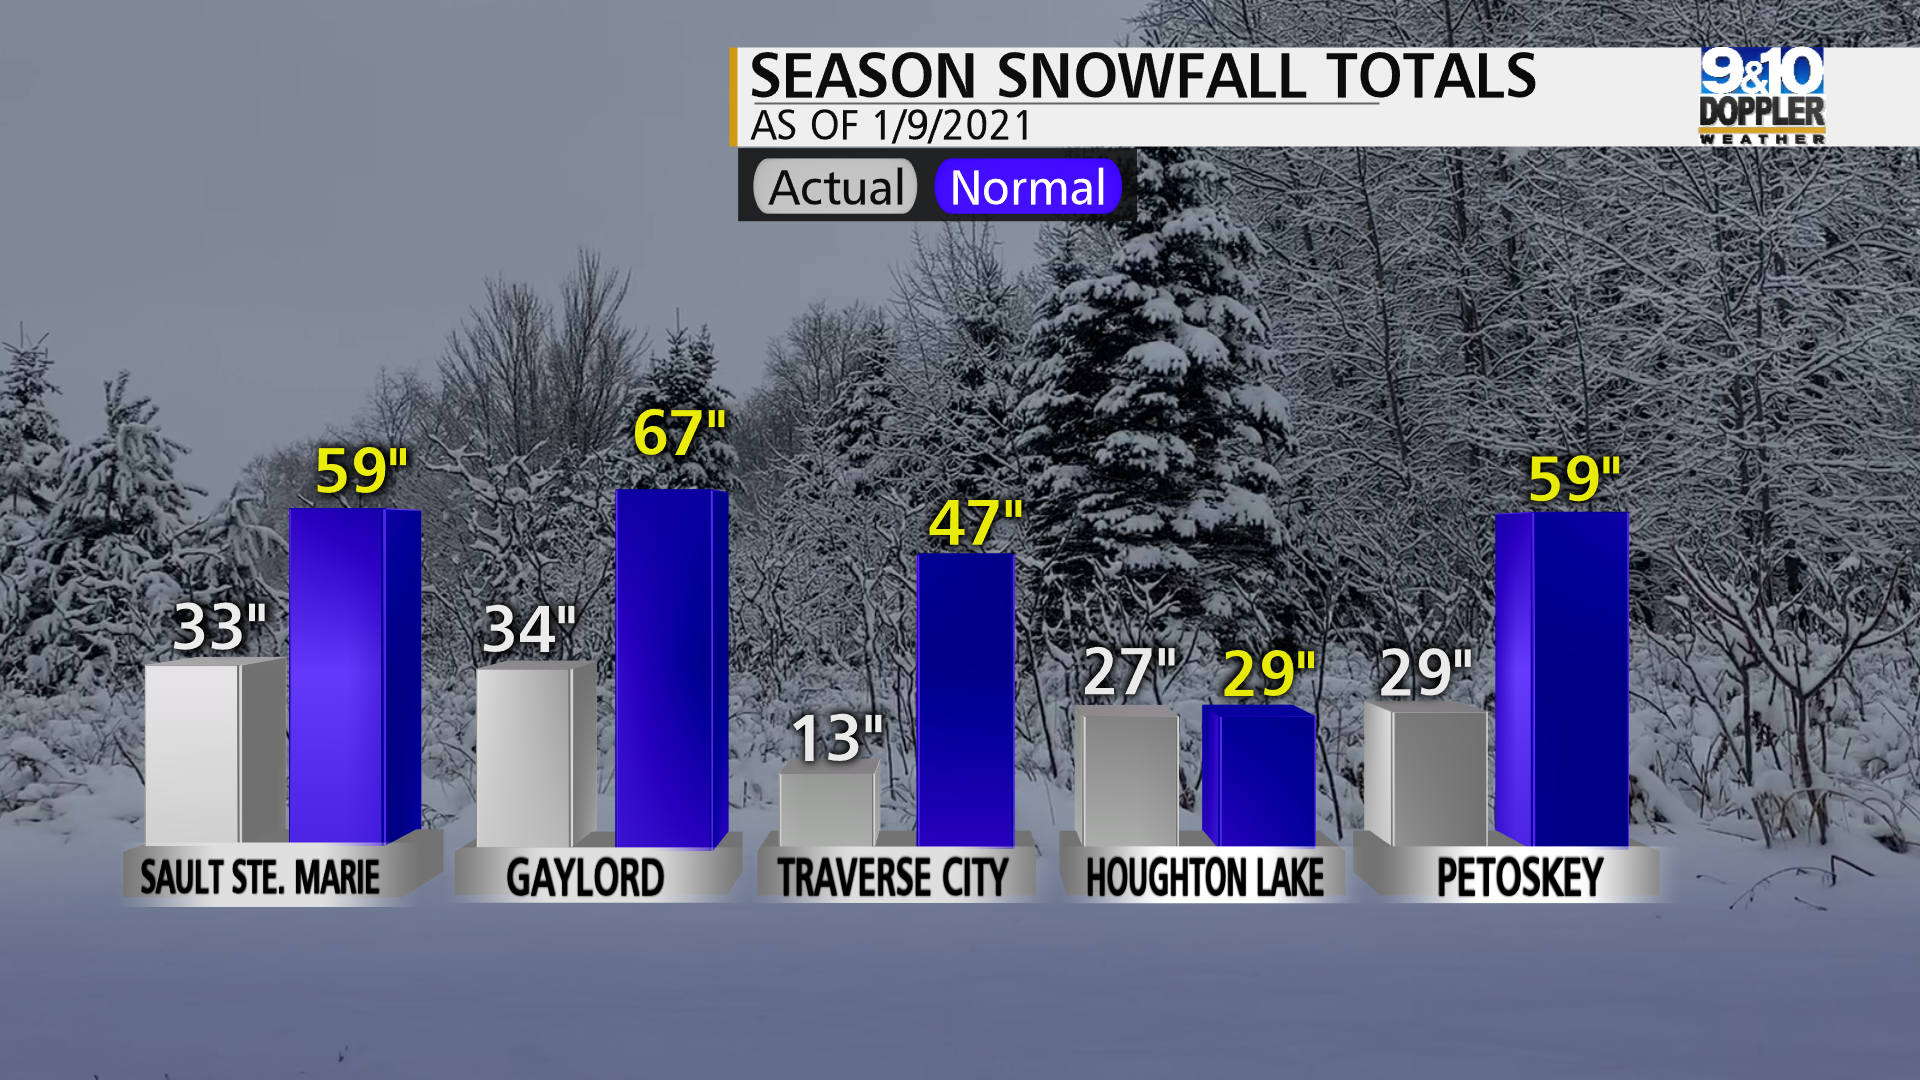 Snowfall To Date